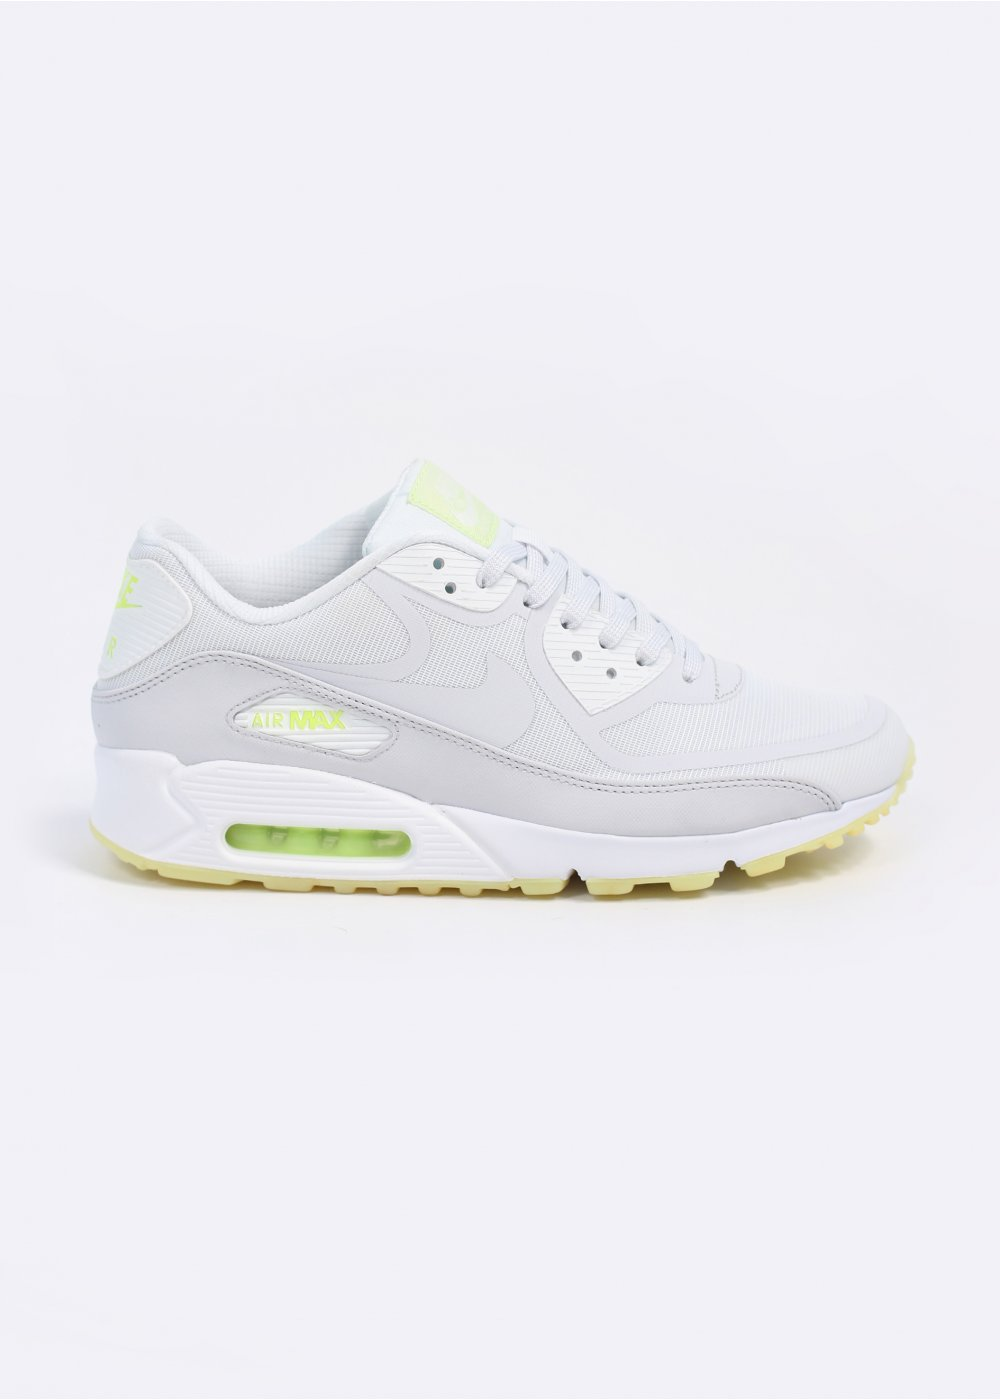 nike air max 90 Billig, Nike air max 90 prem tape glow in